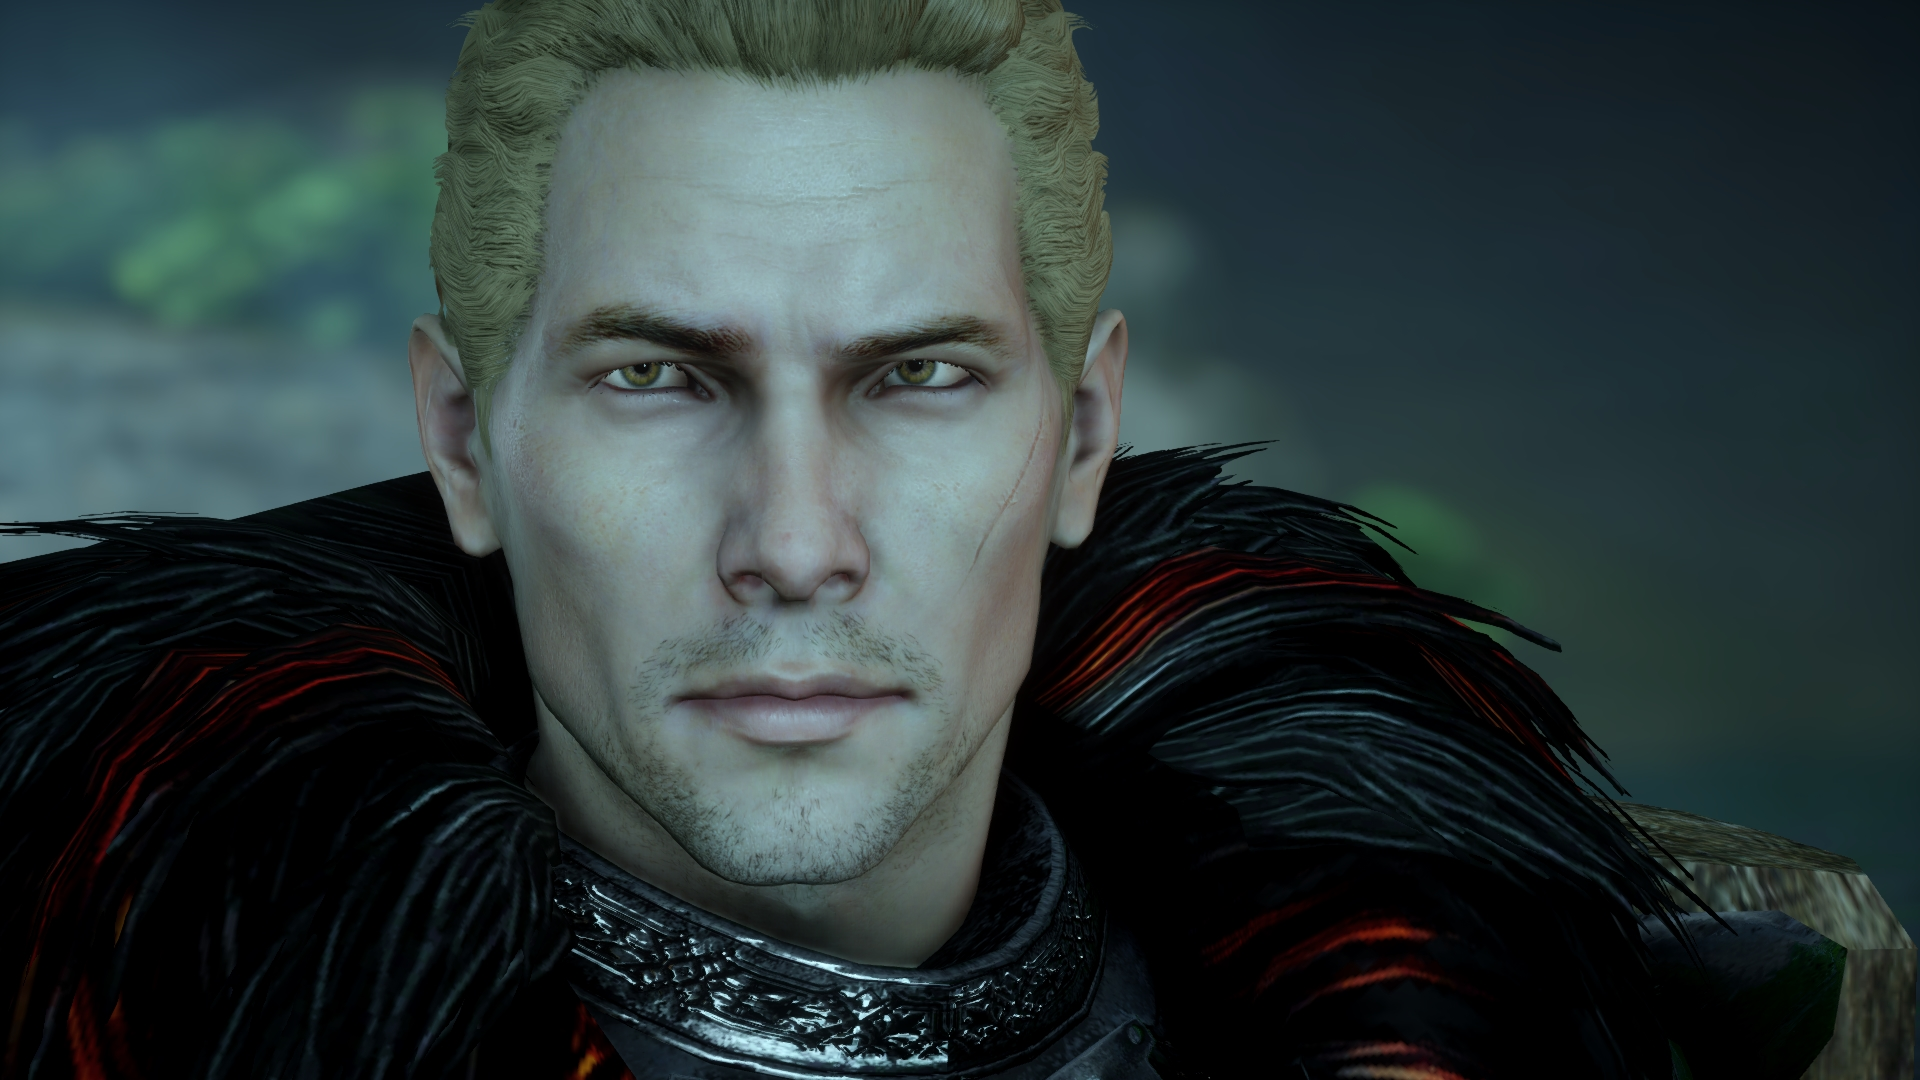 Shiny Eyes At Dragon Age Inquisition Nexus Mods And Community